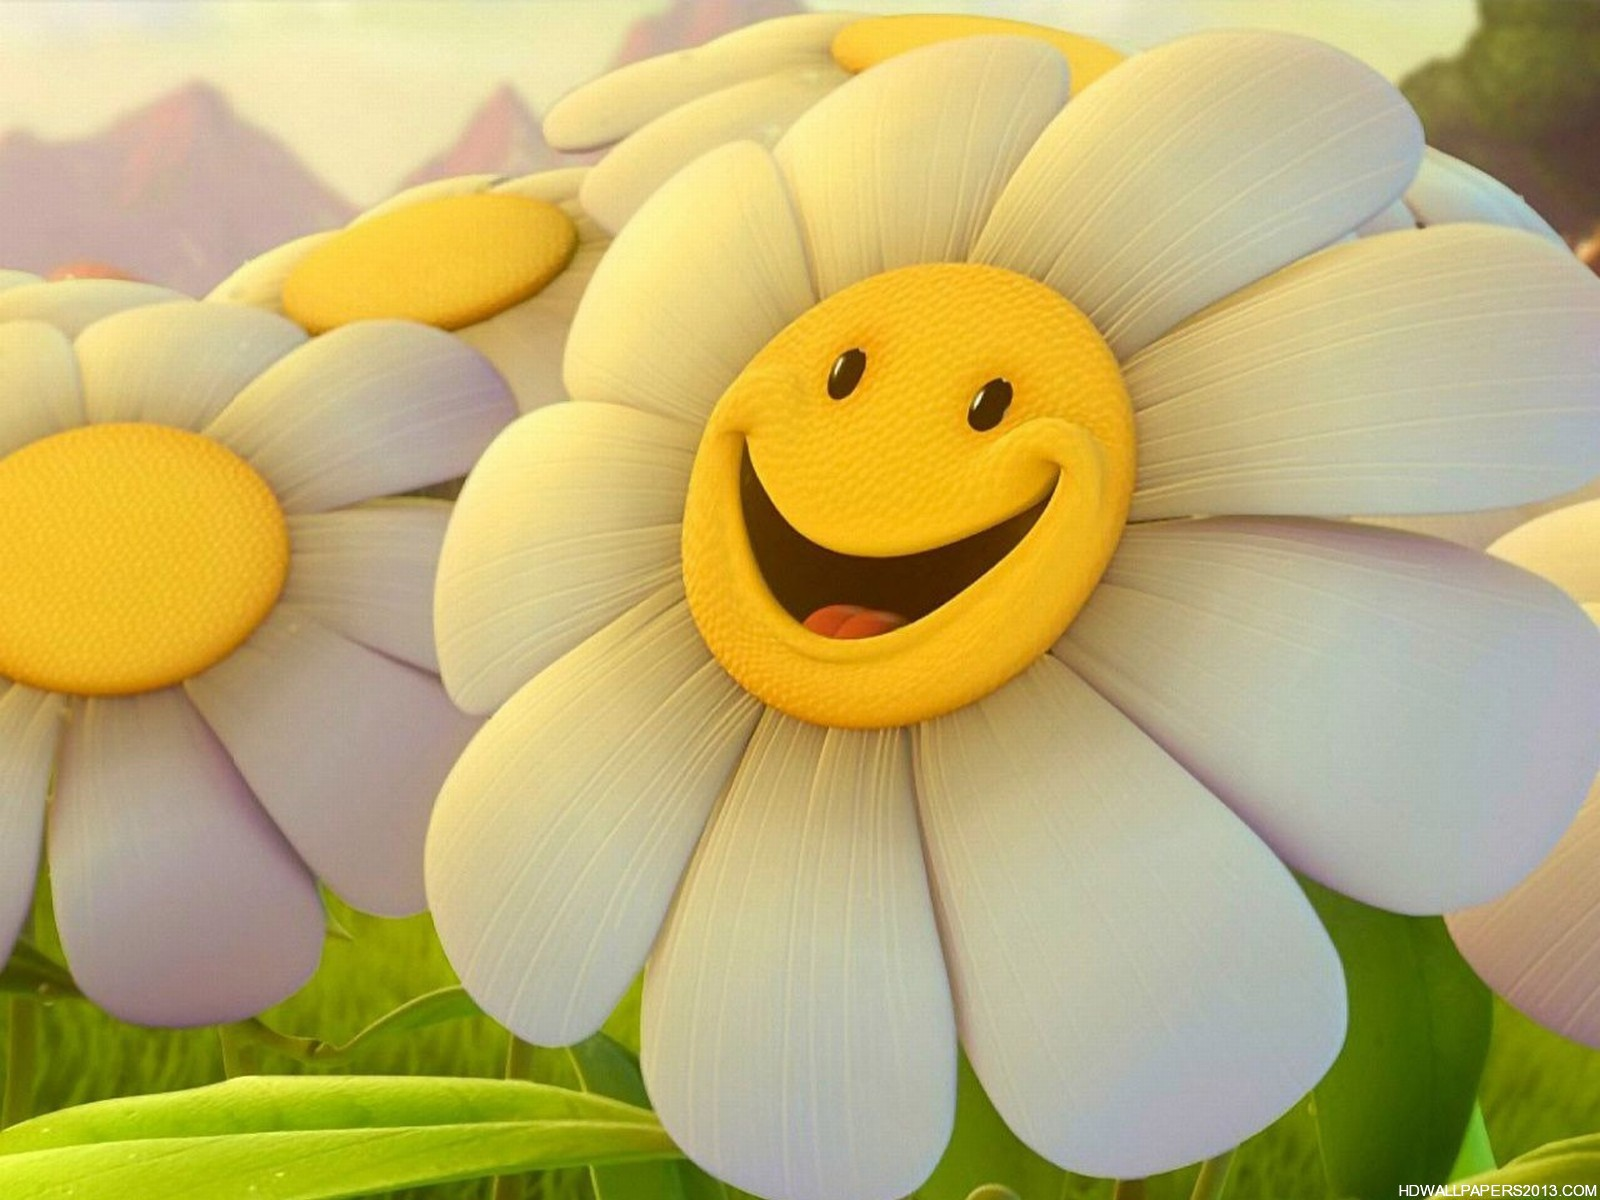 Smiley Faces Wallpapers HD Wallpapers Smiley Faces Wallpapers 1600x1200